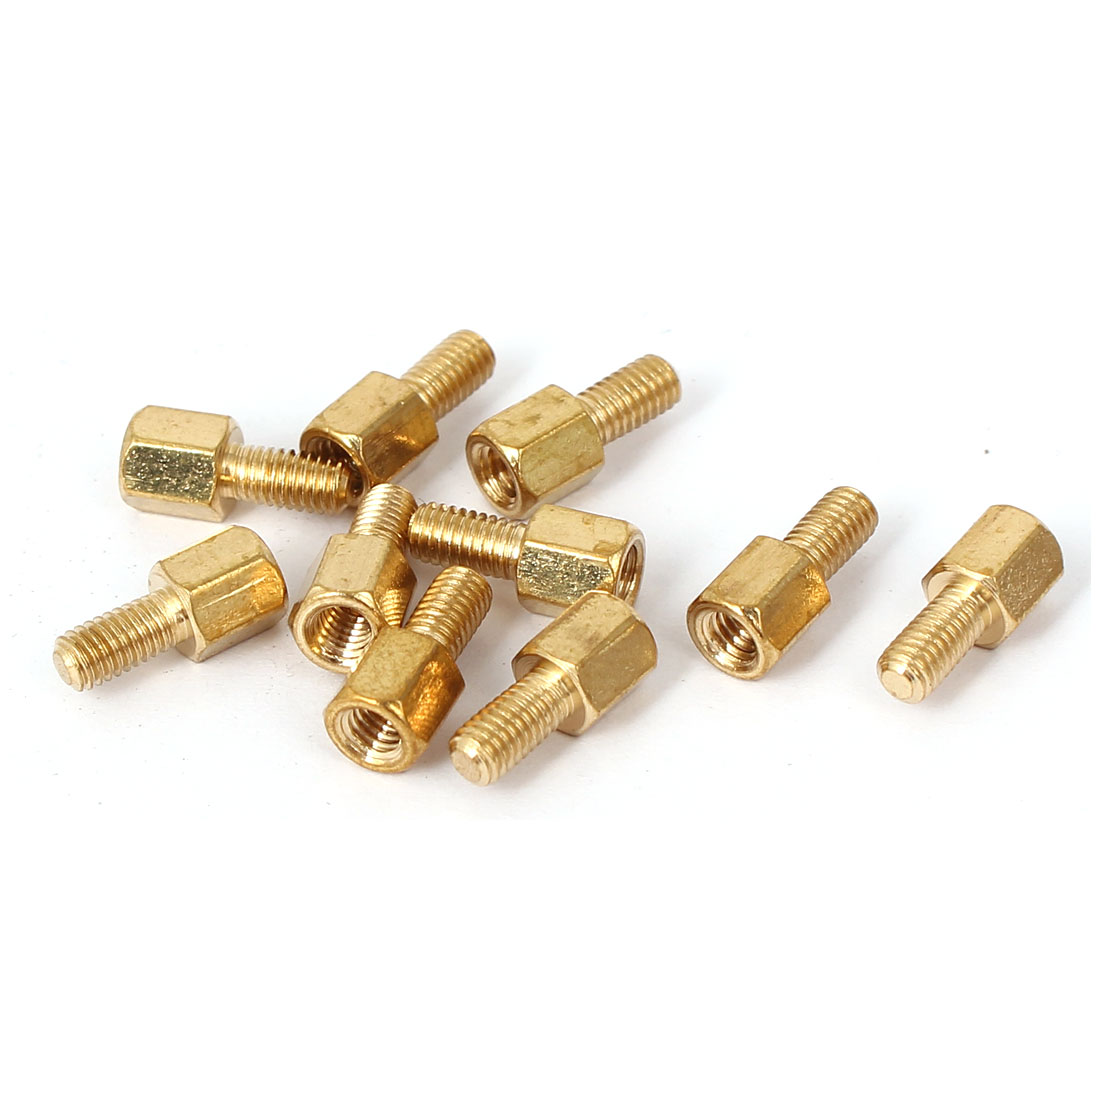 M3 x 5mm + 6mm Brass Hex Hexagon Pillars PCB Standoffs Stand-off Spacers 10PCS